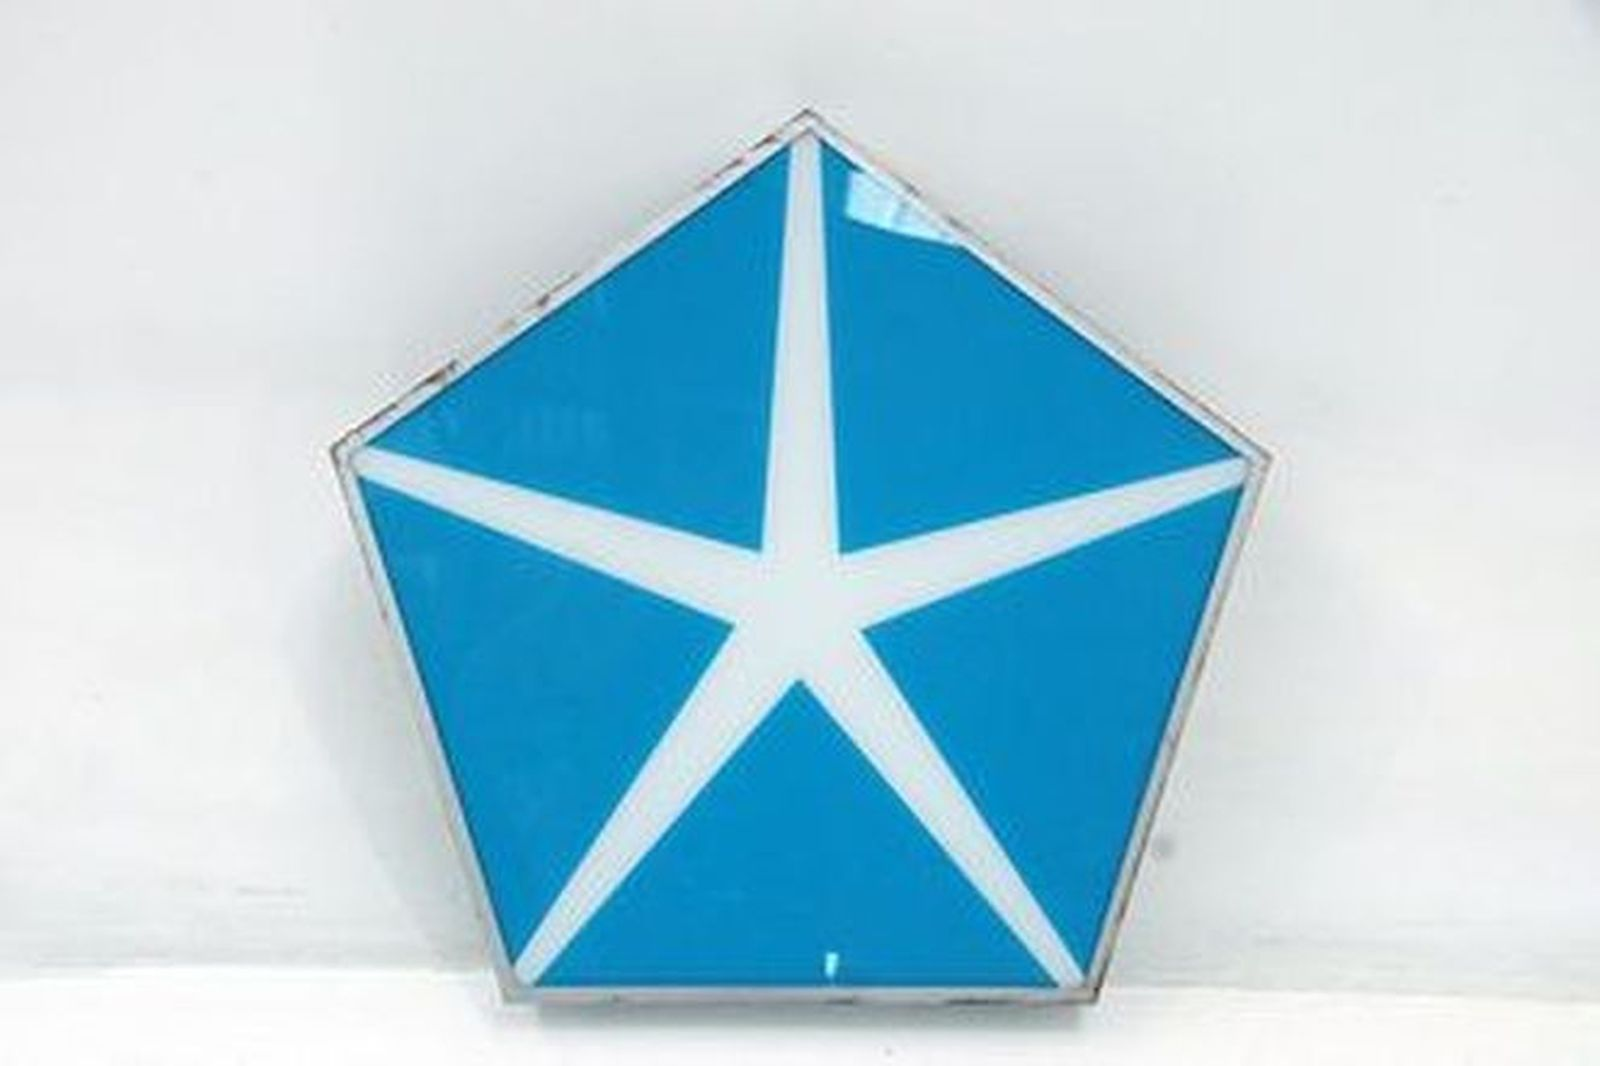 Light - Chrylser Pentastar Light Box  (81 x 84cm)